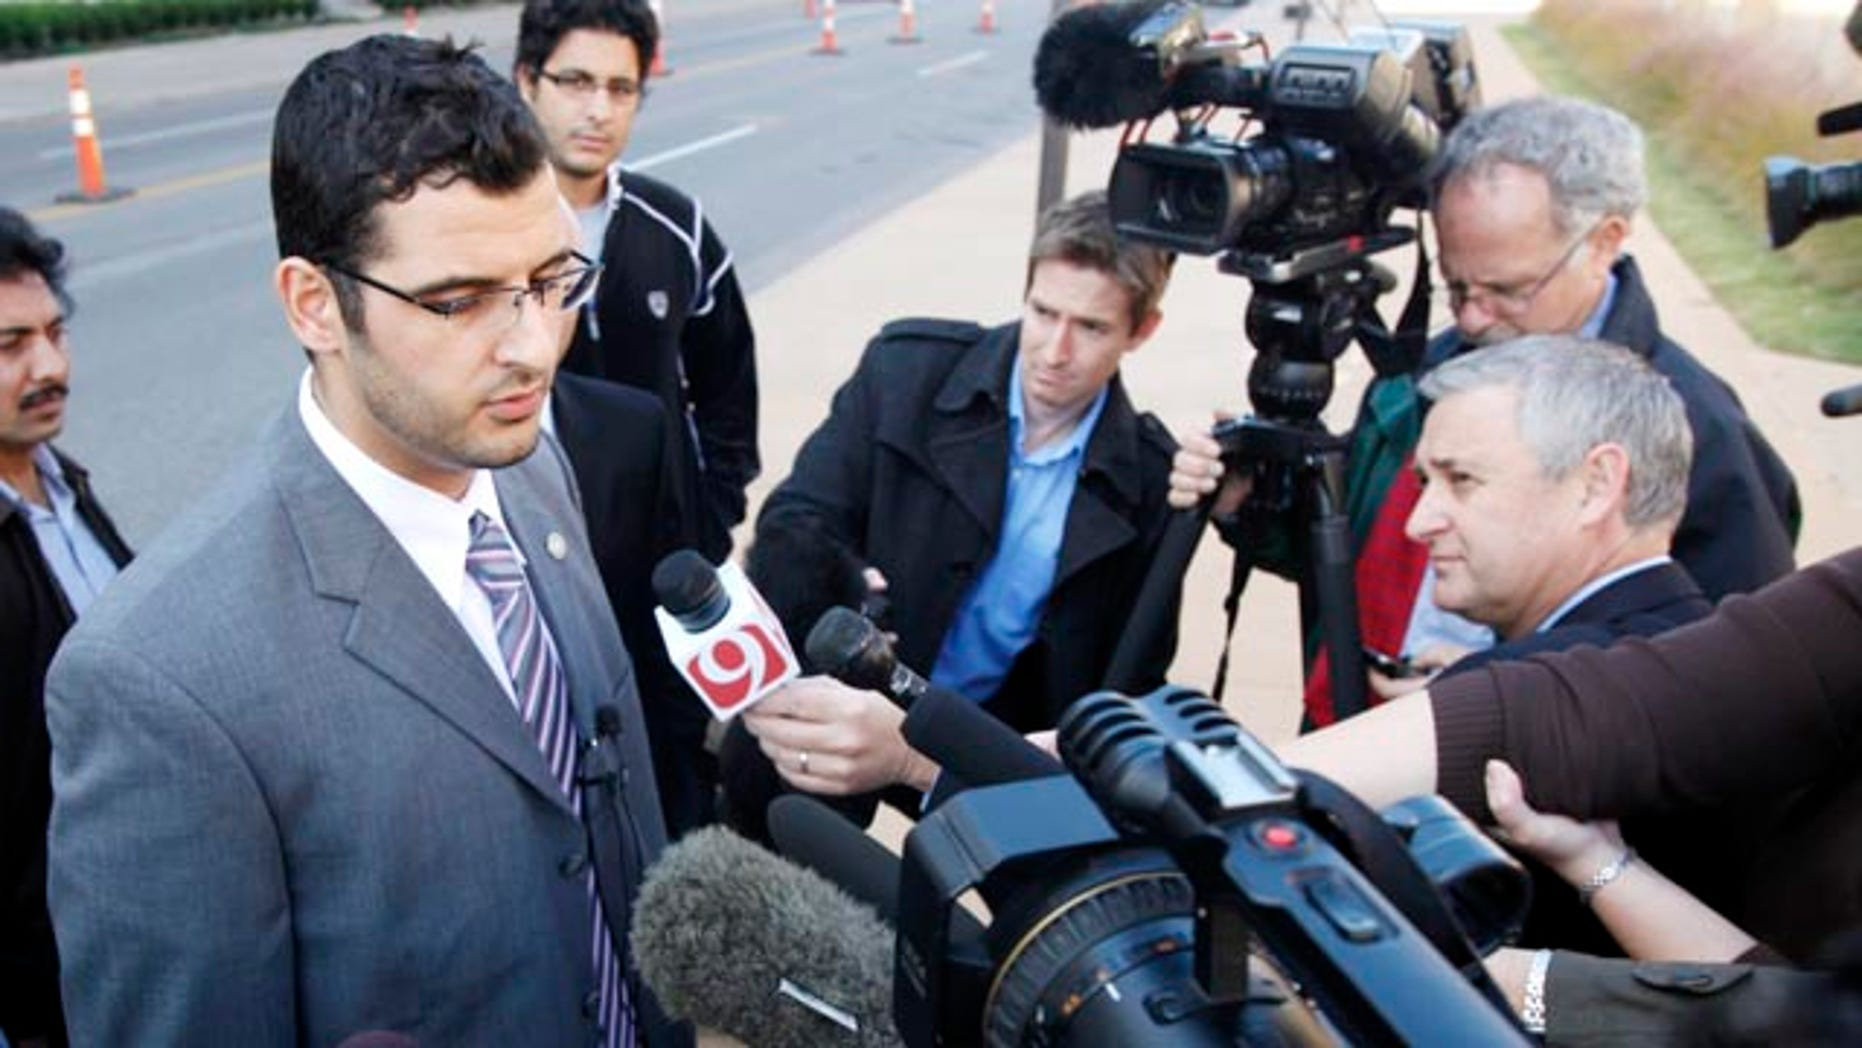 Nov. 8: Muneer Awad, executive director of Council on American-Islamic Relations in Oklahoma, talks to members of the media outside a Federal Courthouse in Oklahoma City. A federal judge in Oklahoma will decide whether to block a constitutional amendment that prohibits state courts from considering international or Islamic law when deciding cases.